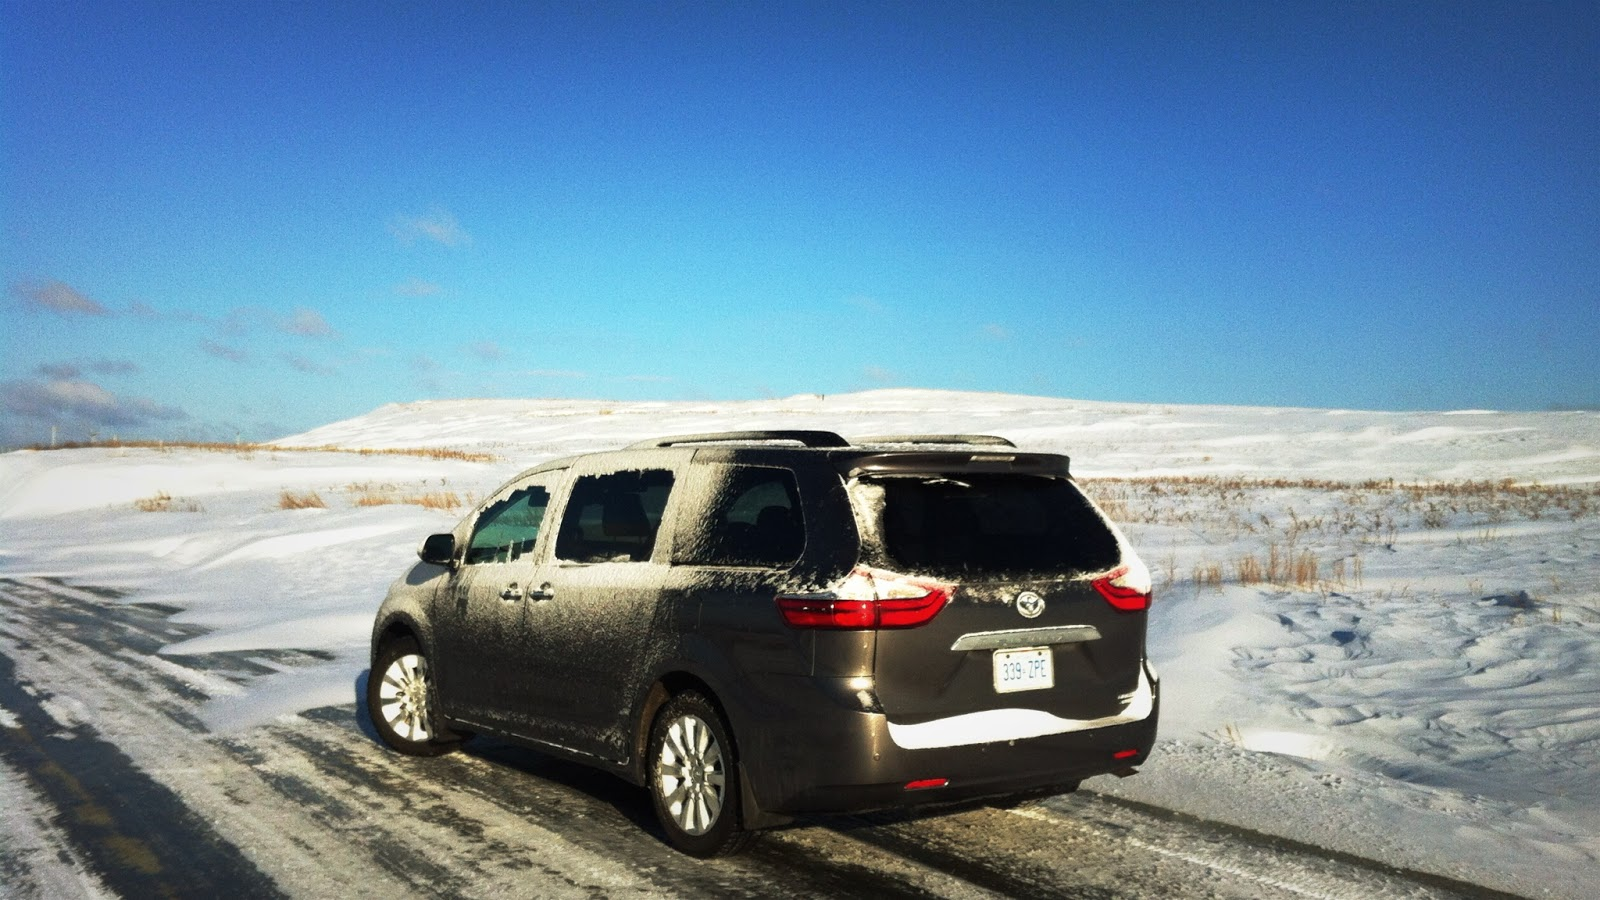 2015 Toyota Sienna AWD winter scene